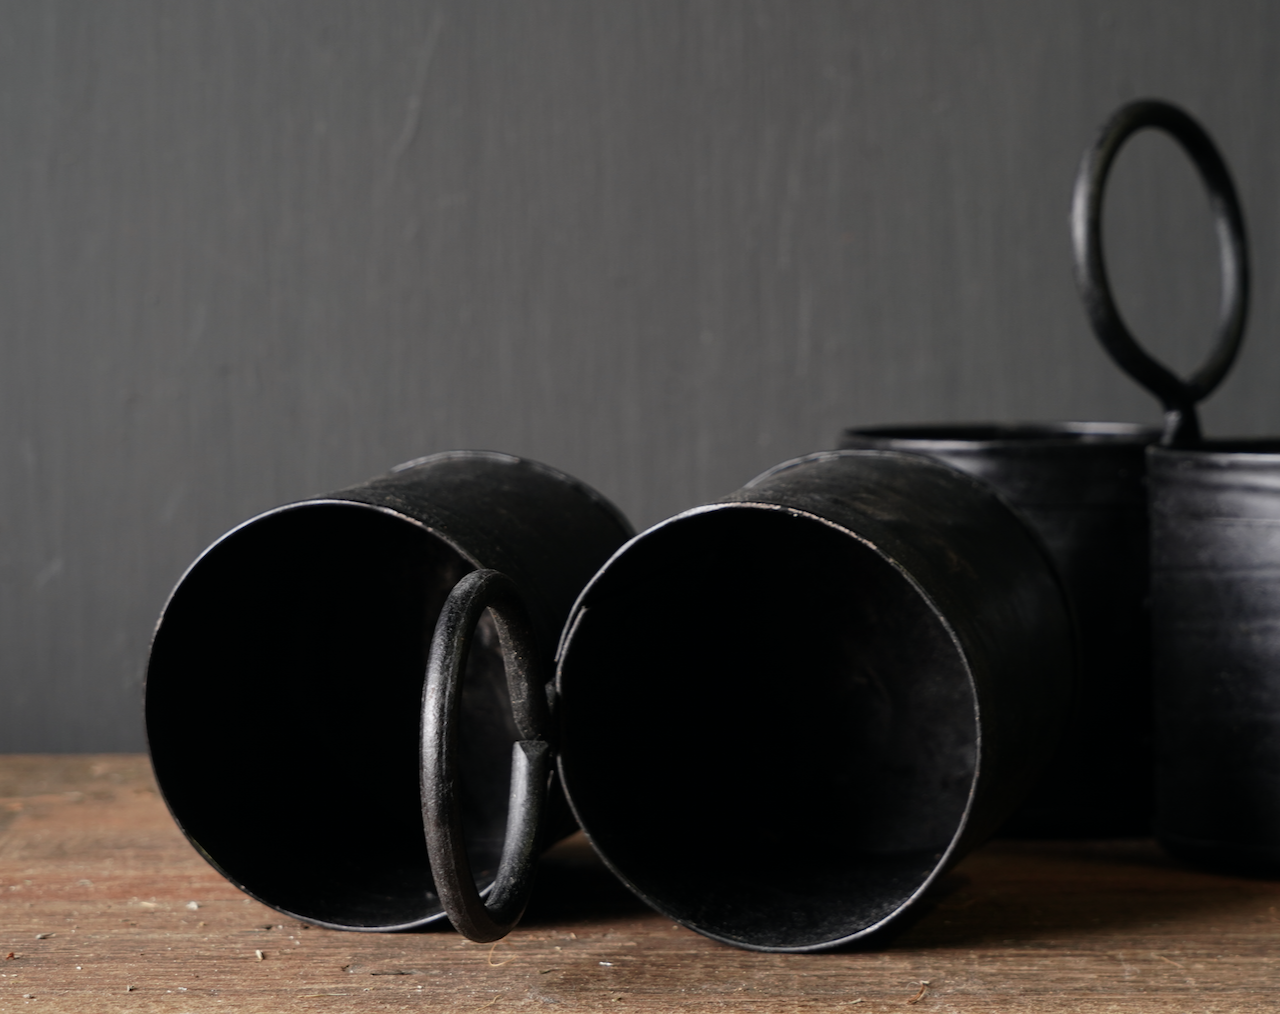 Black Iron cups 2 together with handle-3